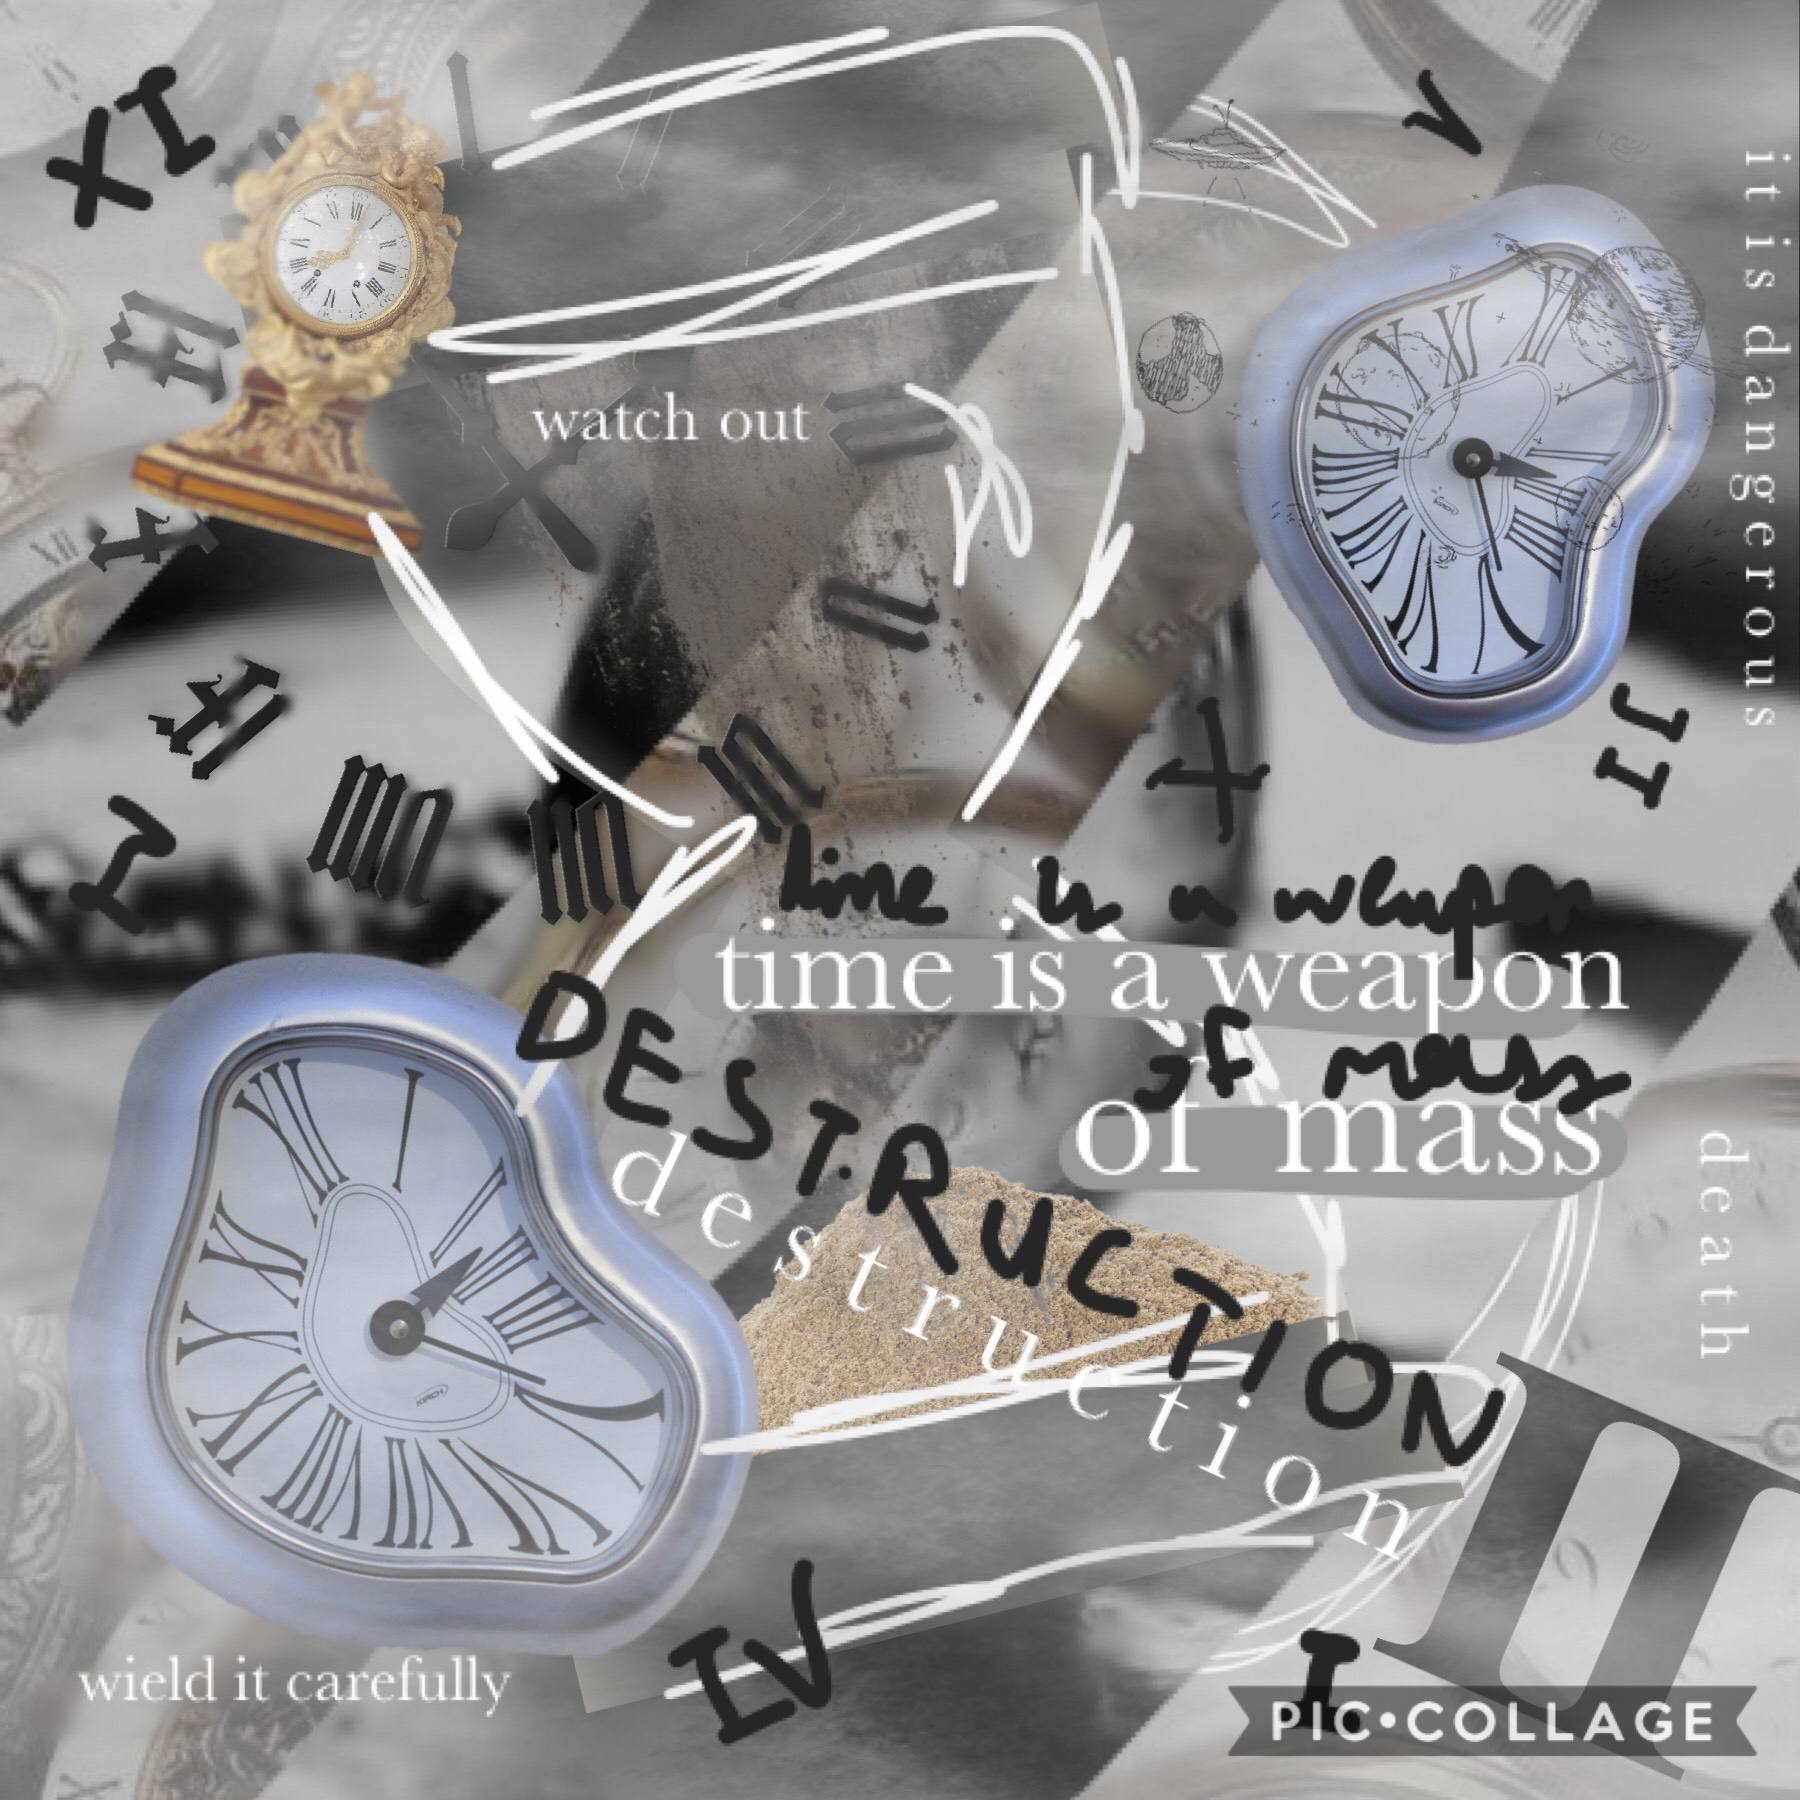 inspired by... not a user but a book! Everless by Sara Holland! And Evermore too l, the sequel (which i'm almost finished!) i feel like the elements don't work well together, like in some of my collages, they fight each other instead of working together :